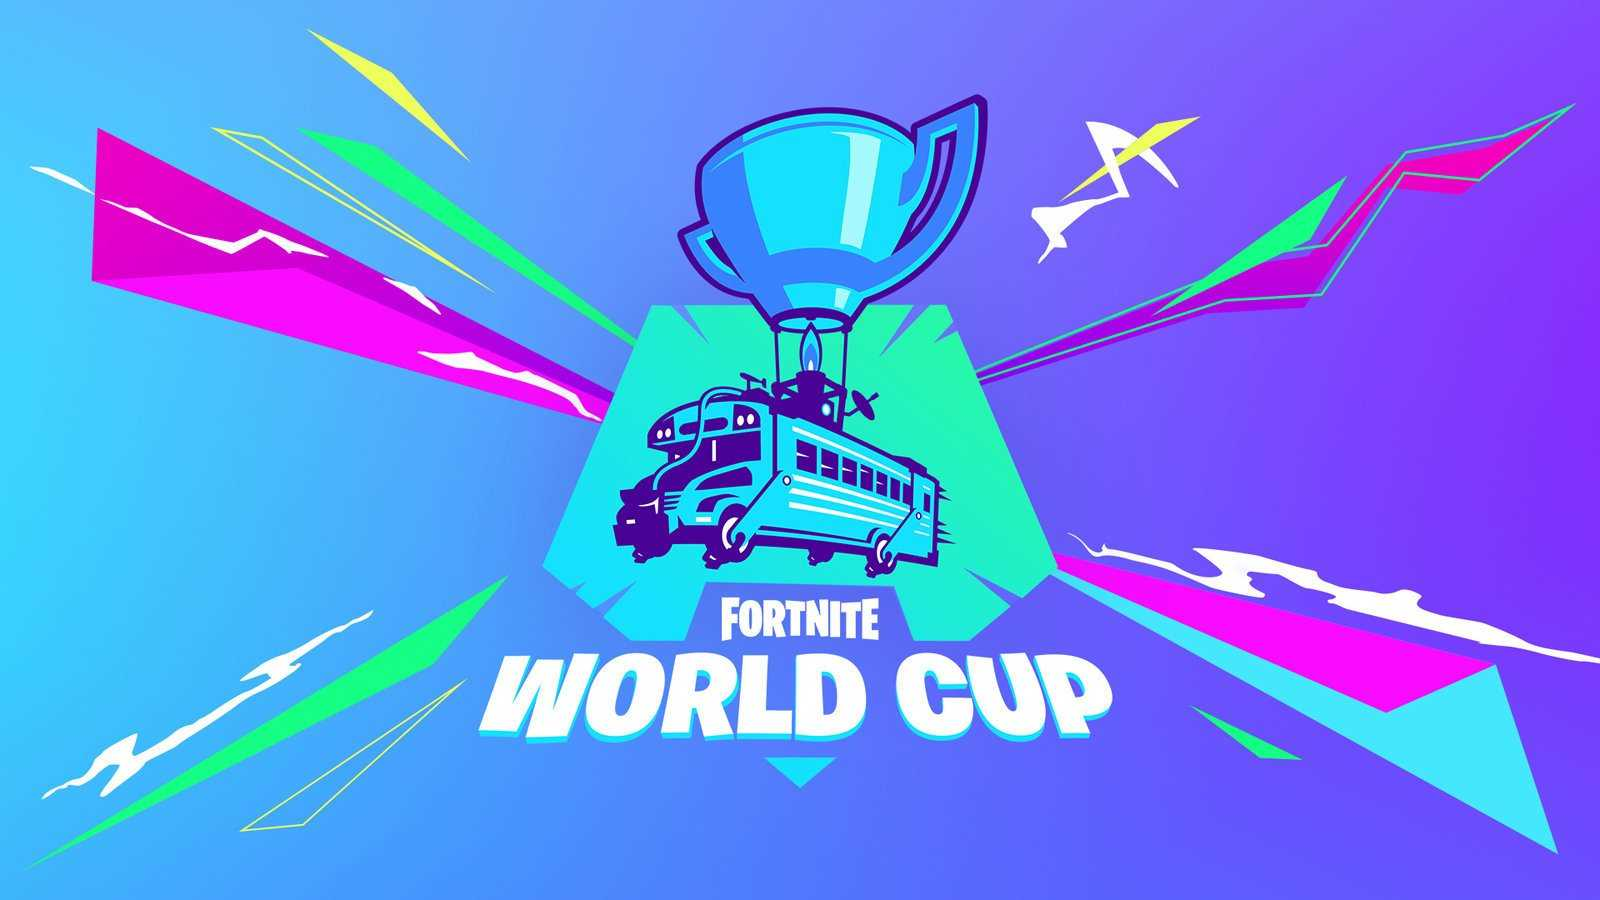 Slut in sista veckan i Fortnite World Cup 2019-kval